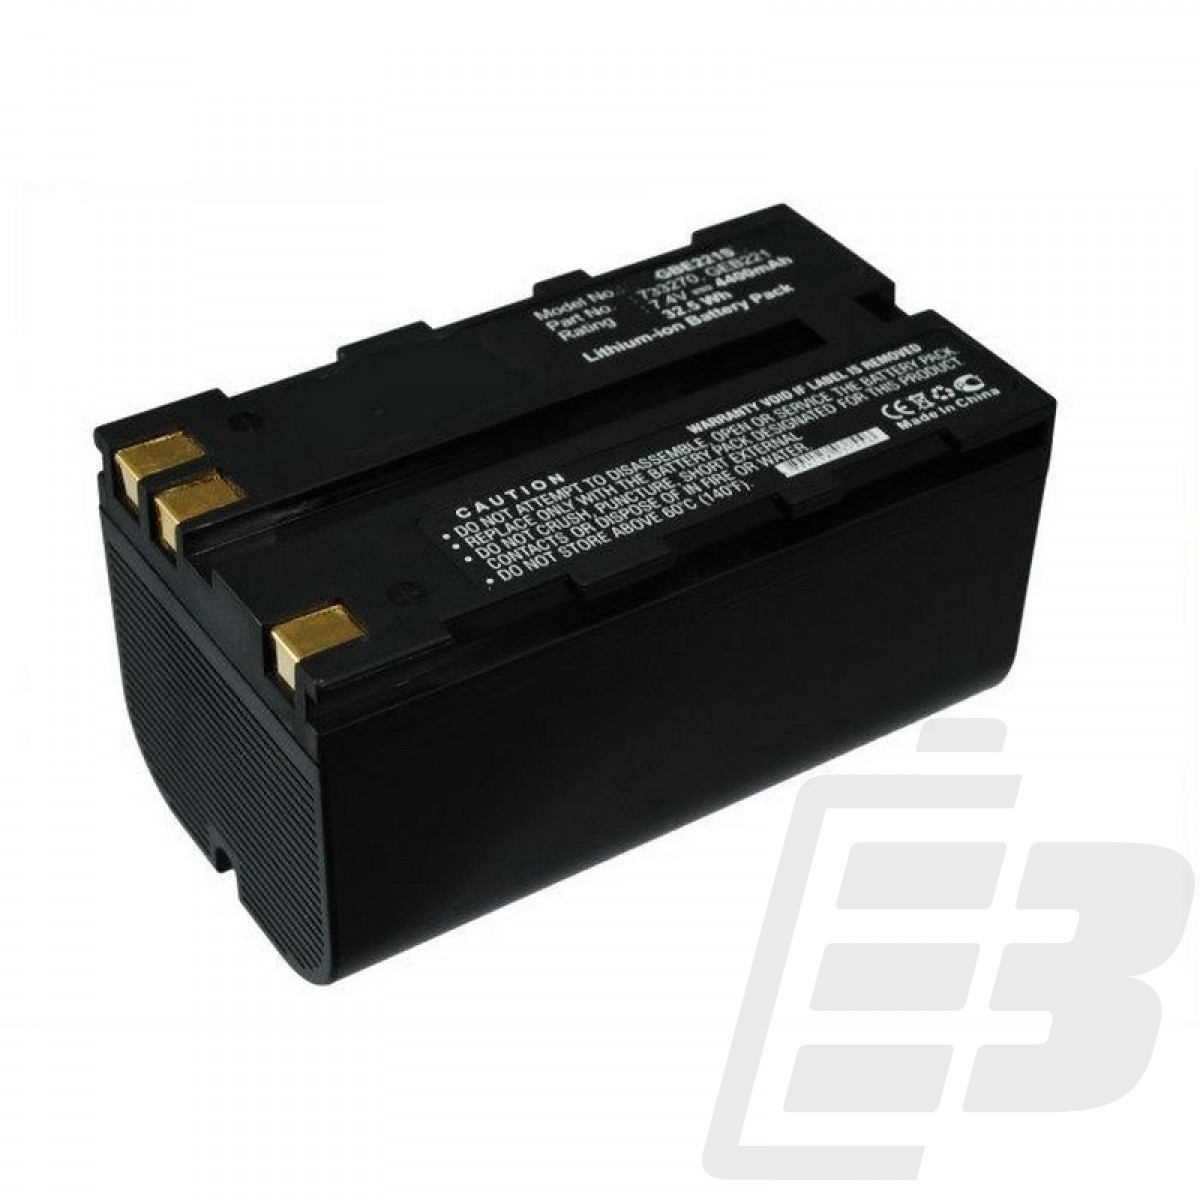 Survey tester battery Geomax Zoom 30 extended_1